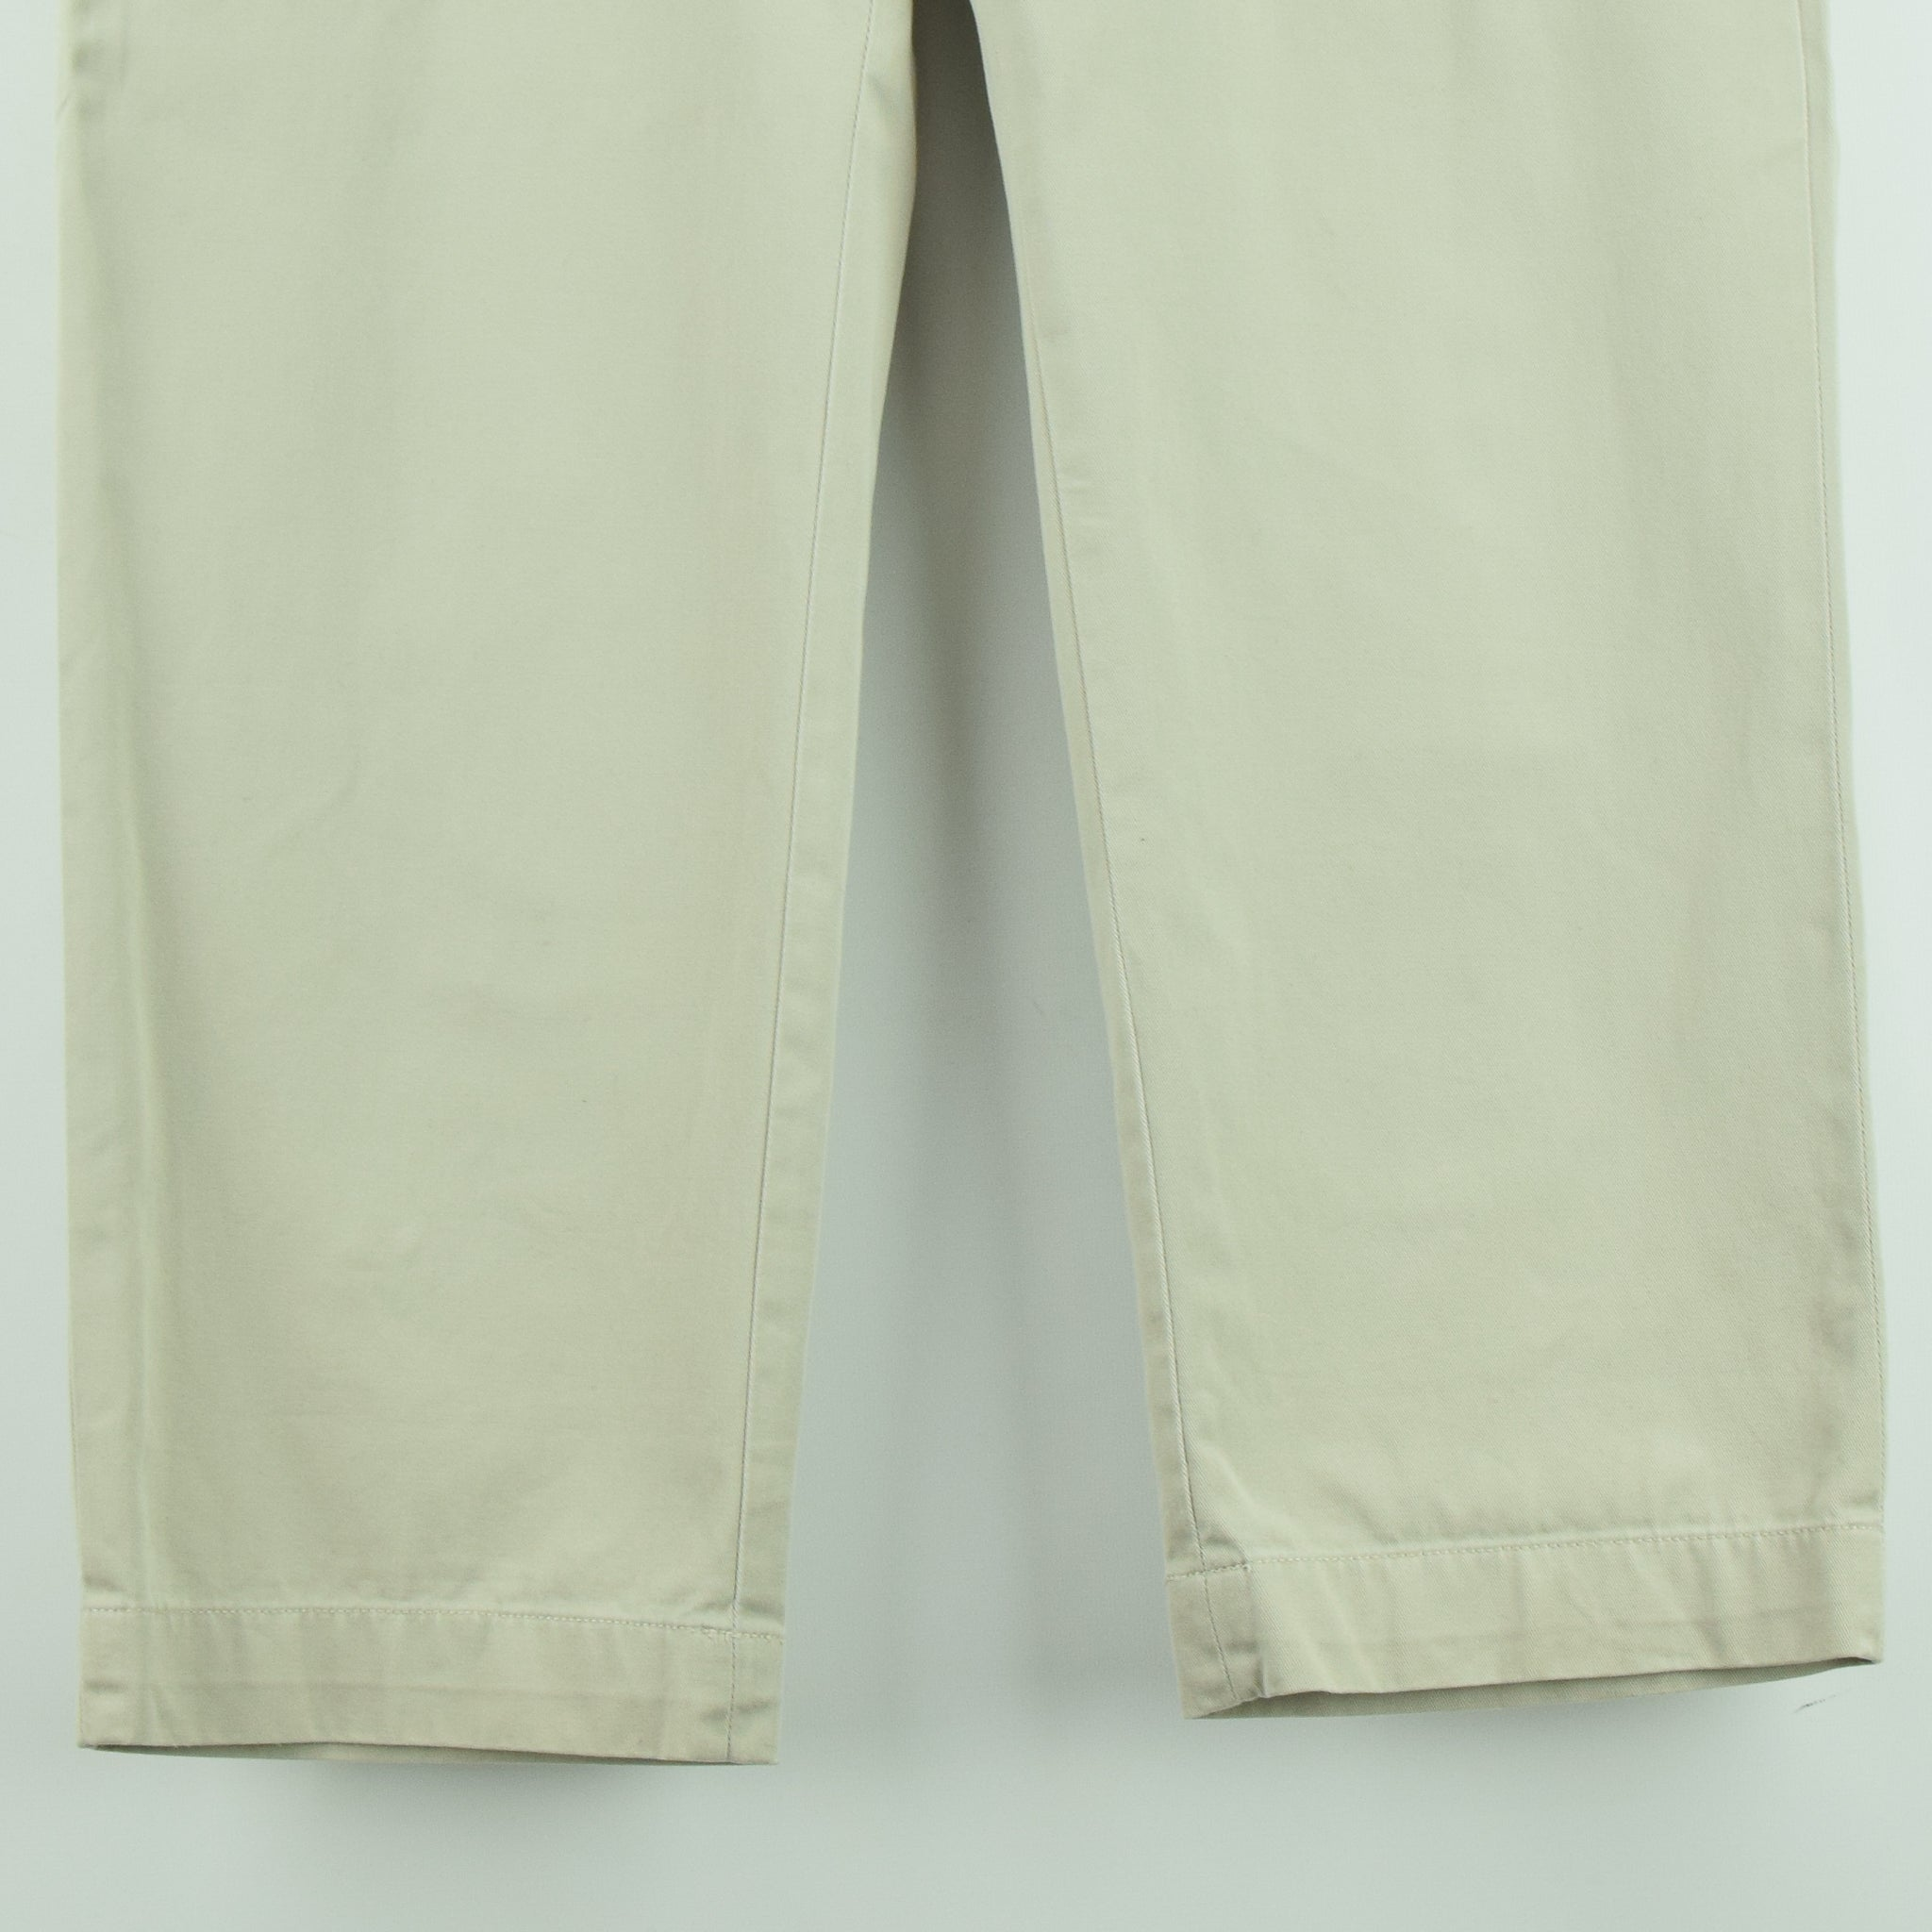 Ralph Lauren Polo Prospect Pant Chinos Stone Flat Front Trousers 32 W 30 L hem